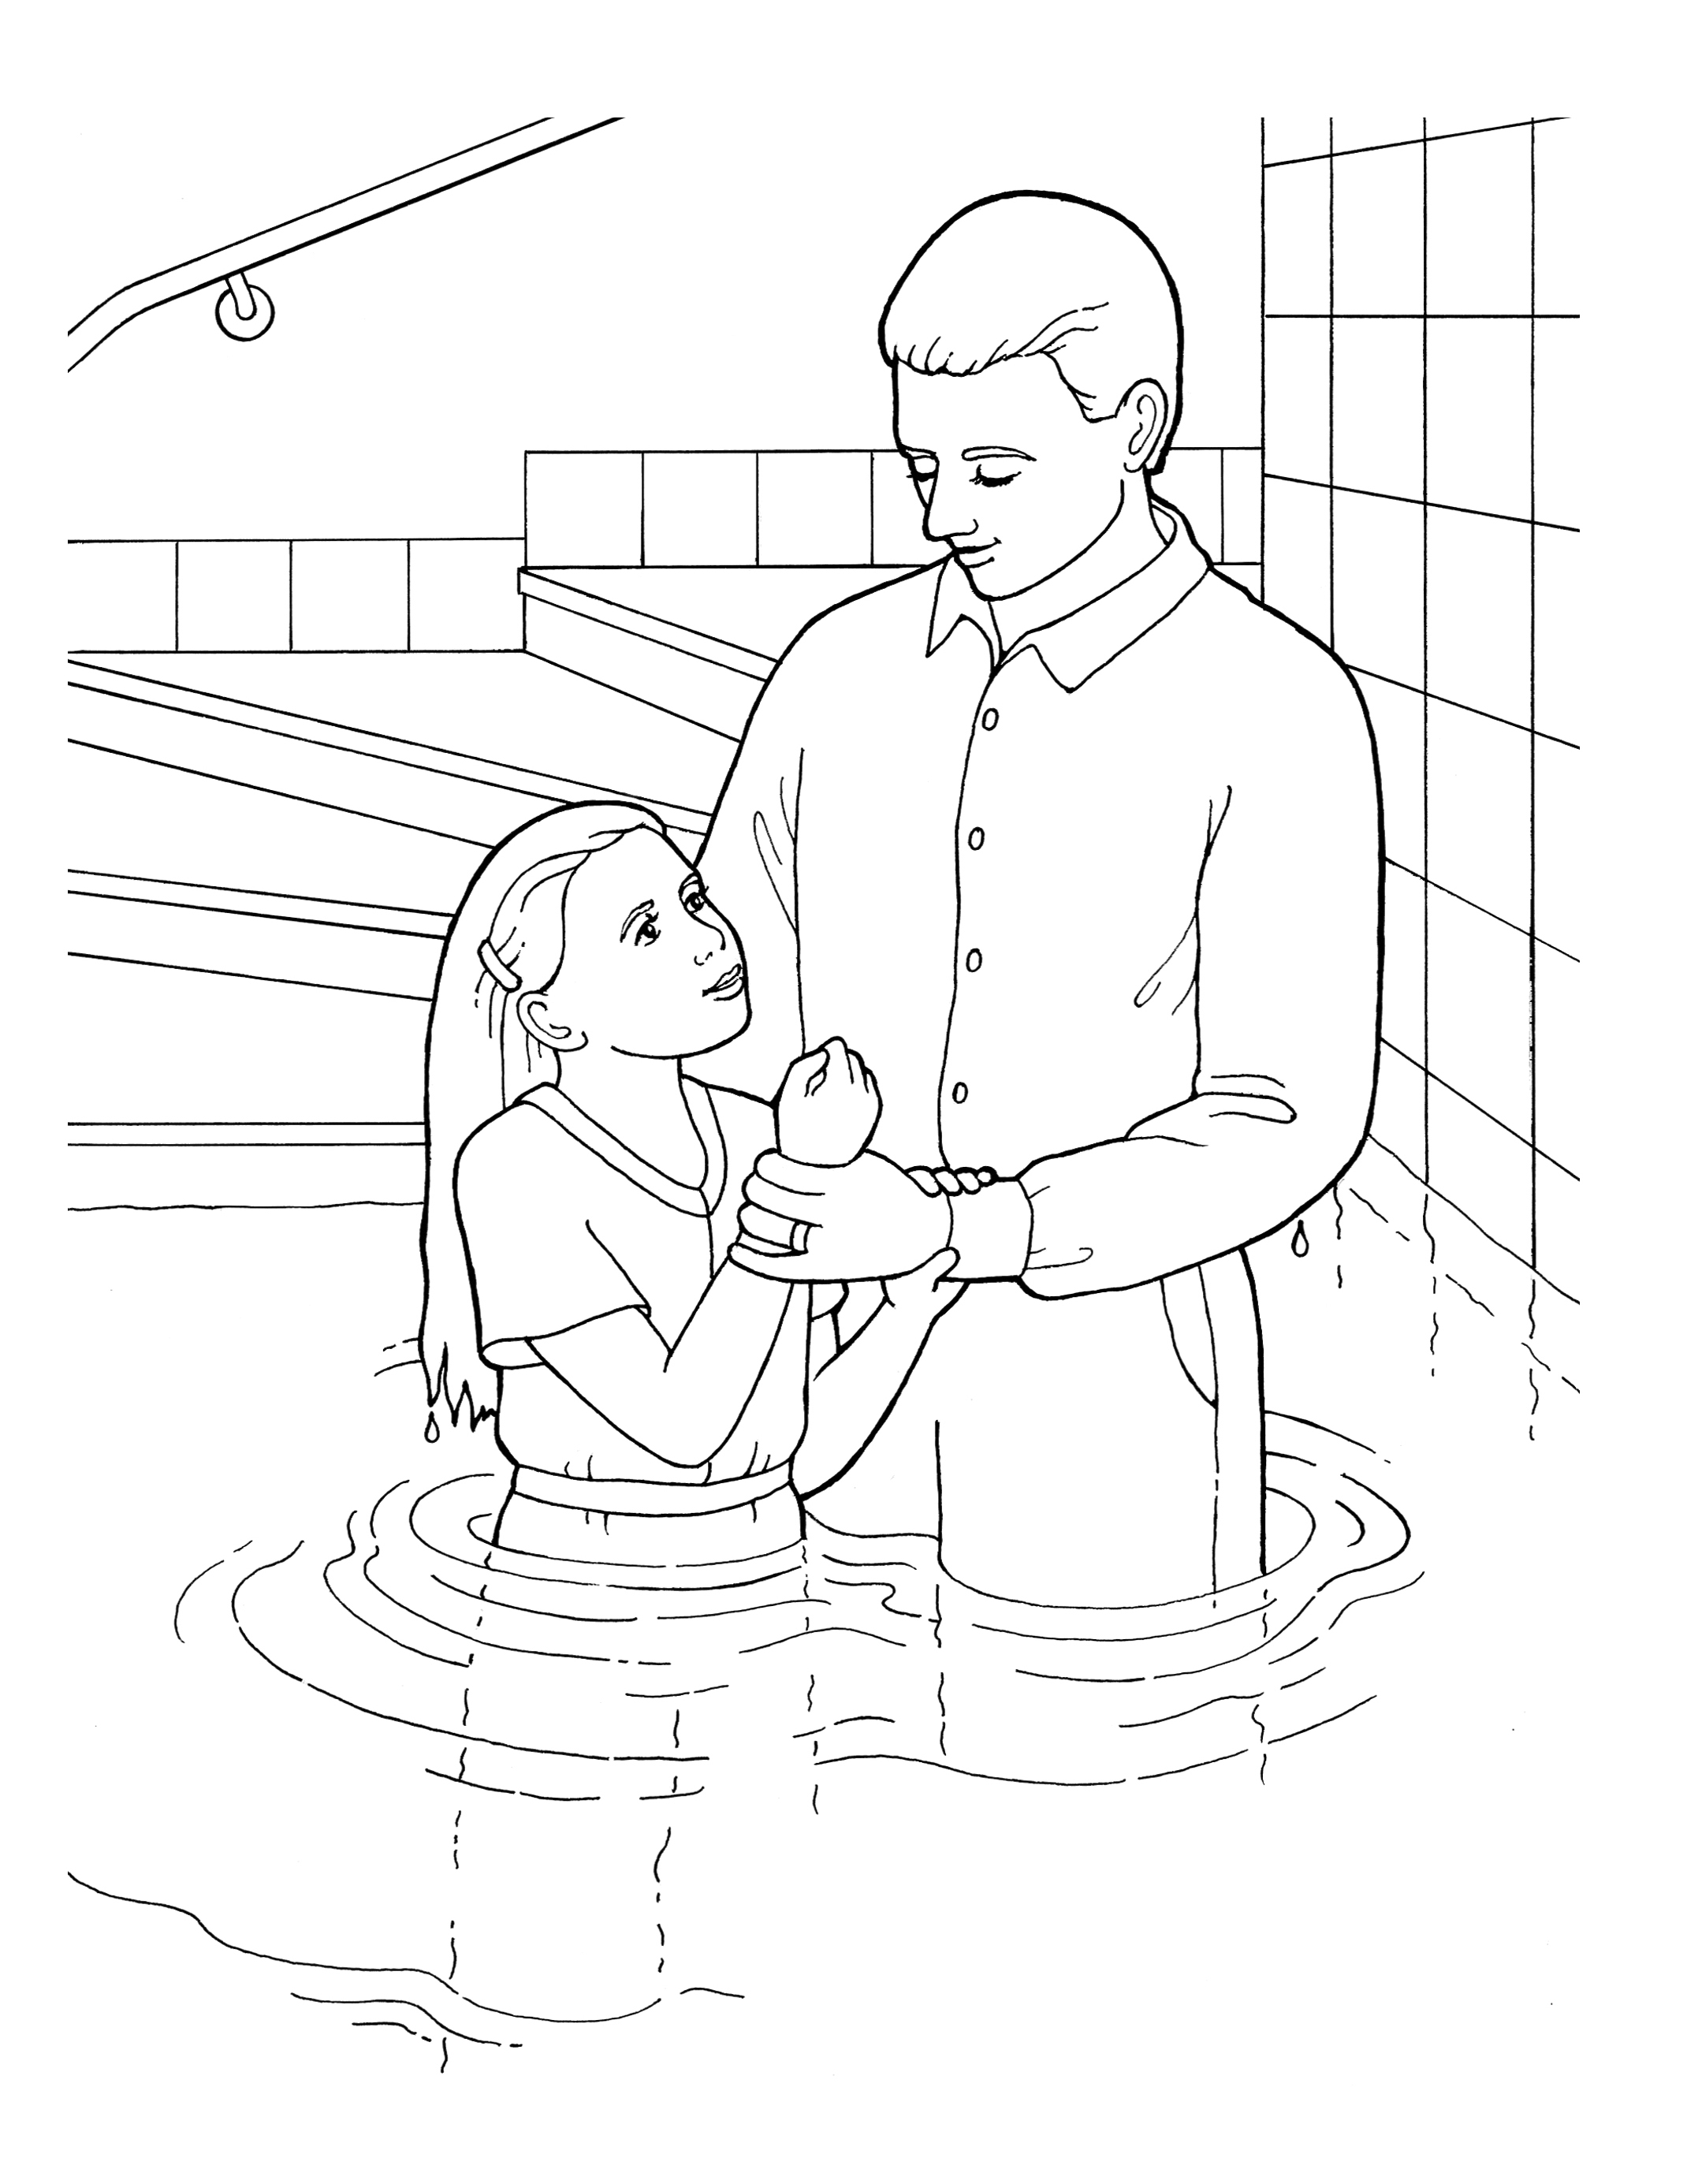 An illustration of a young girl being baptized.